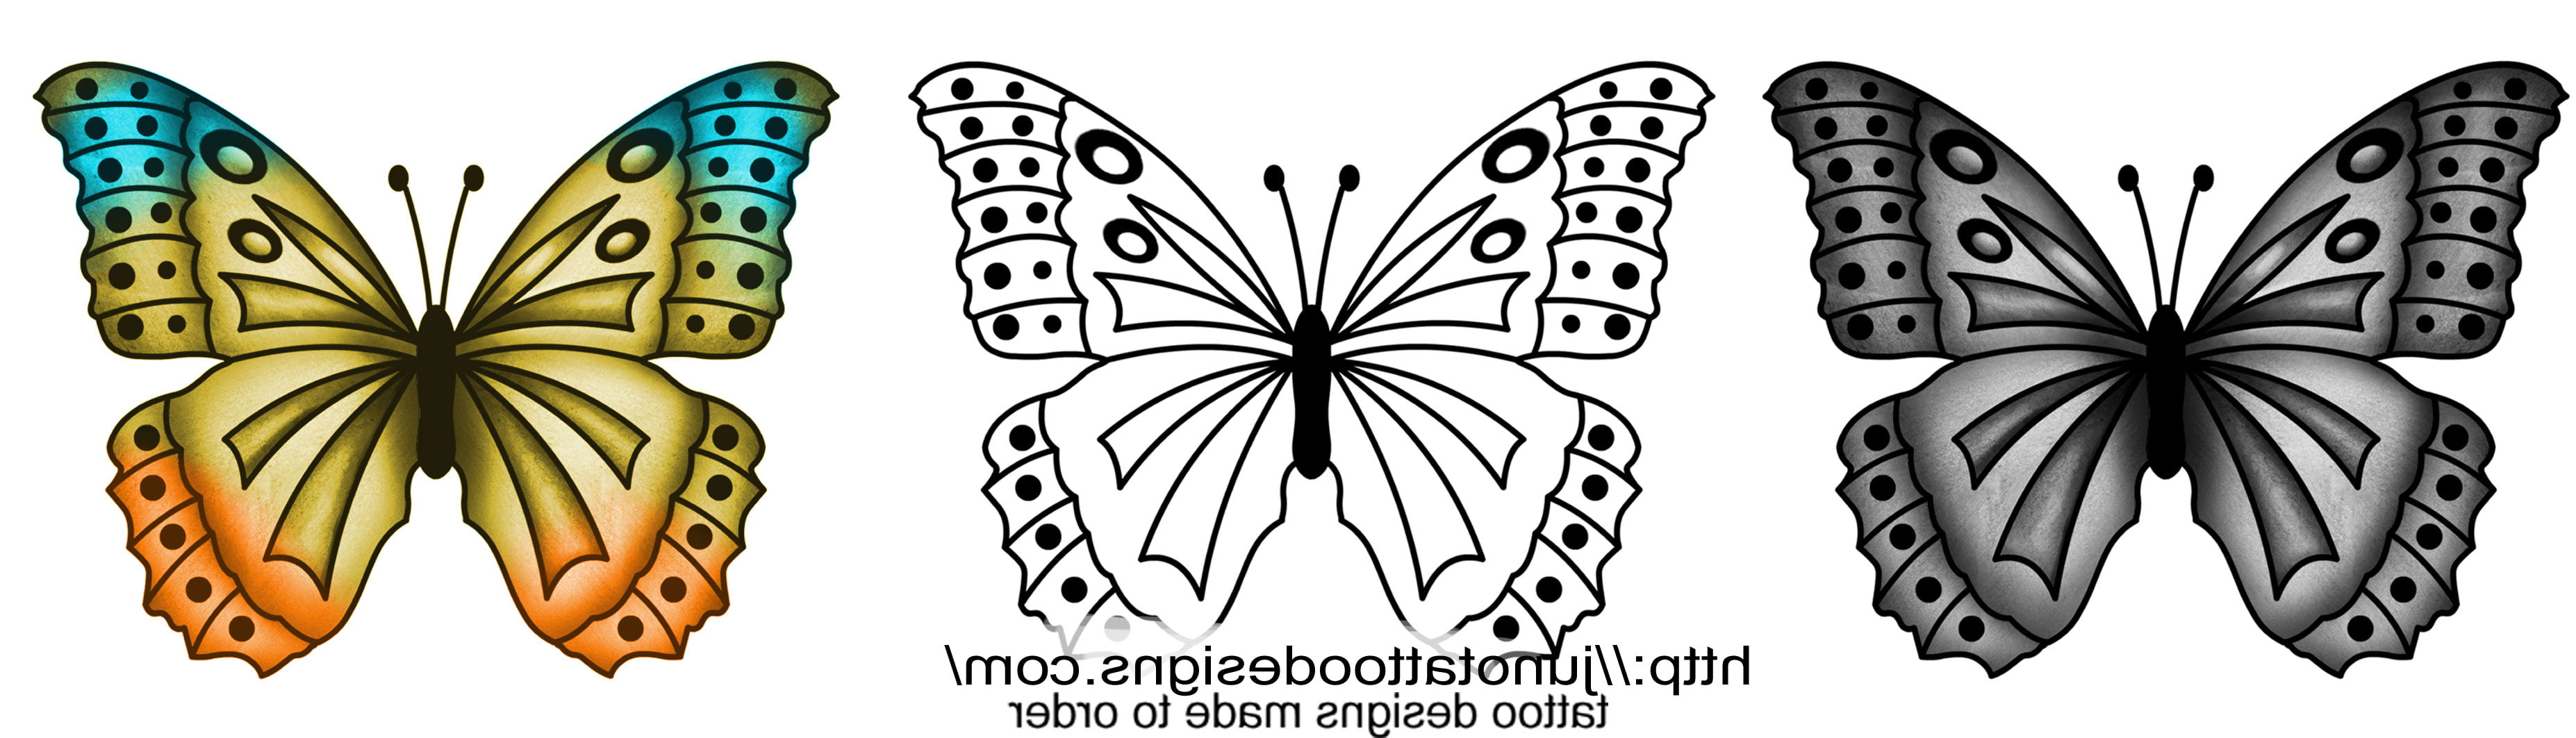 free butterfly tattoo designs to print cool tattoos bonbaden. Black Bedroom Furniture Sets. Home Design Ideas